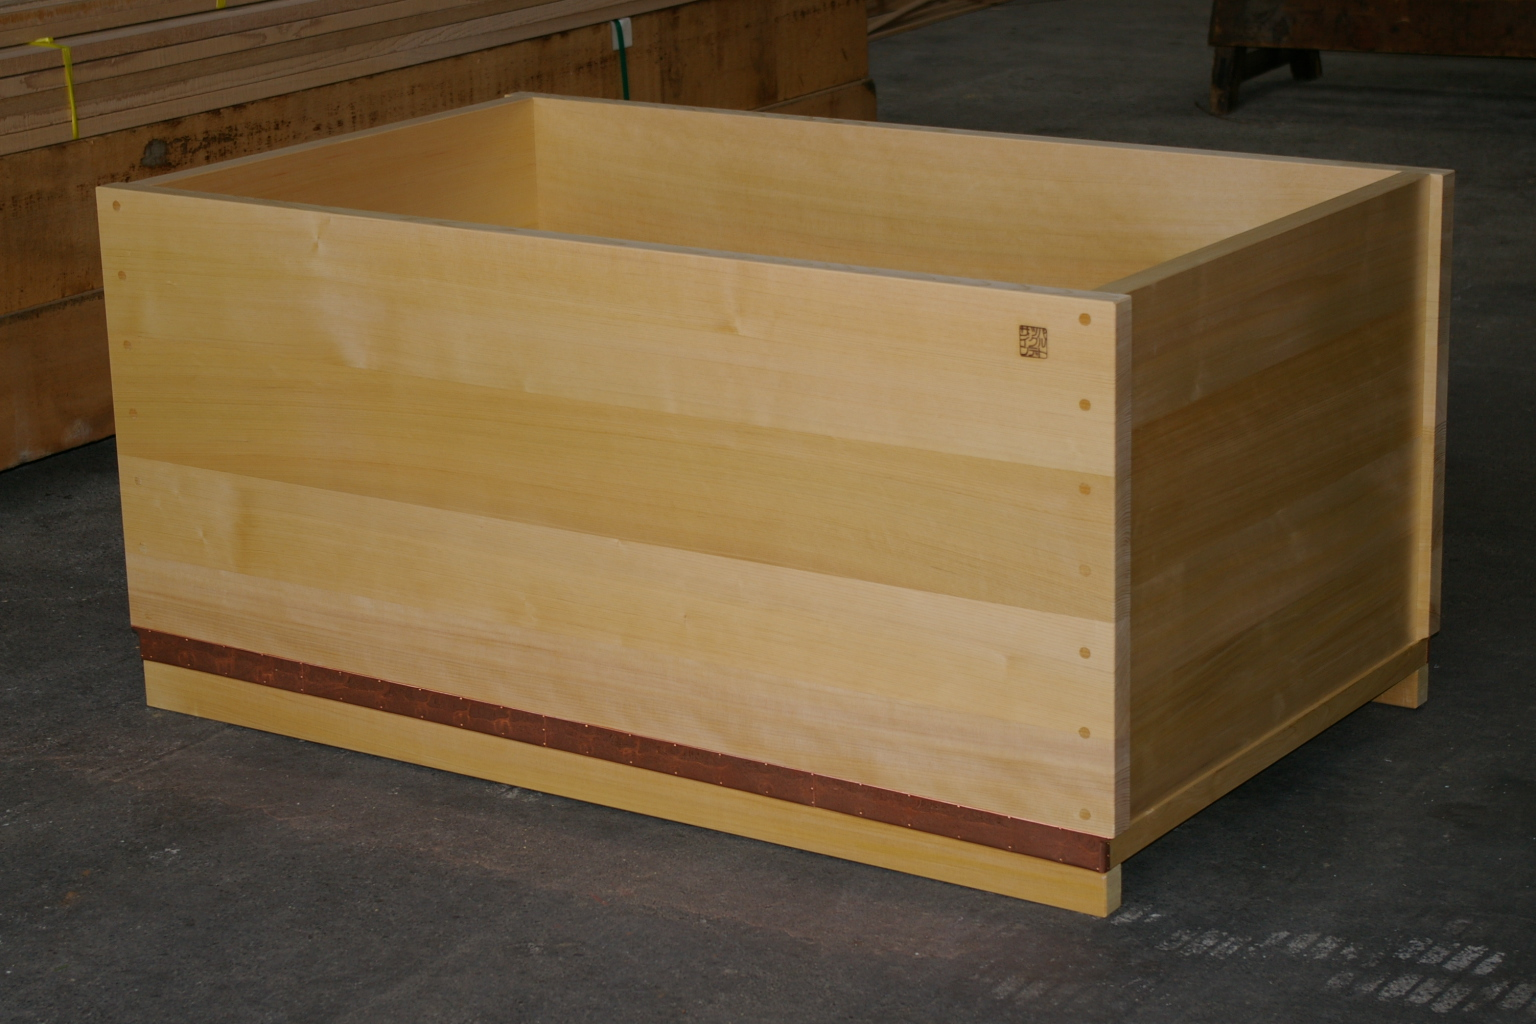 how to make a wooden tub